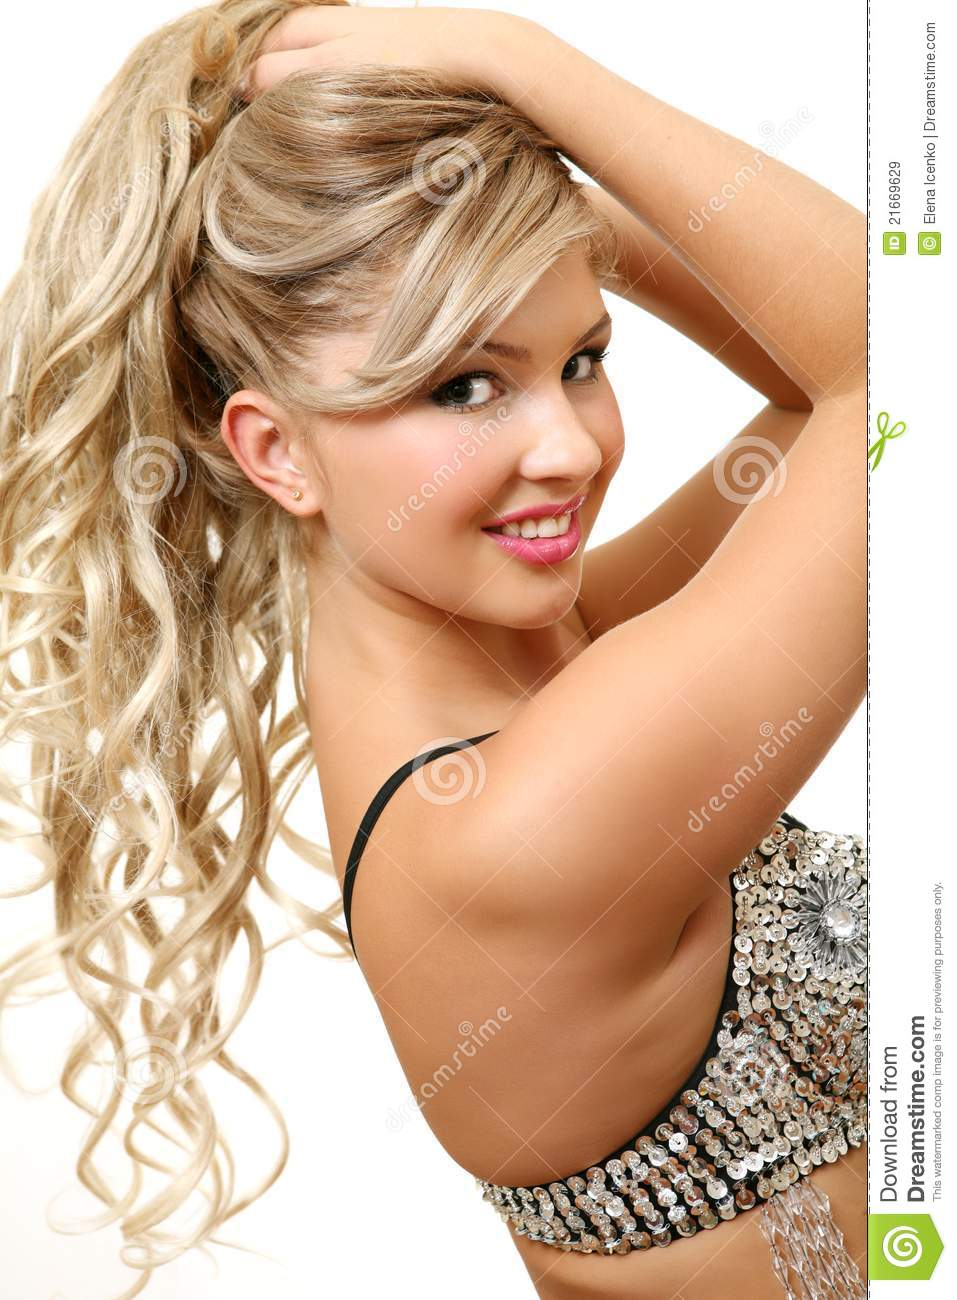 image Young blonde teen with amazing body bates with her deo spray